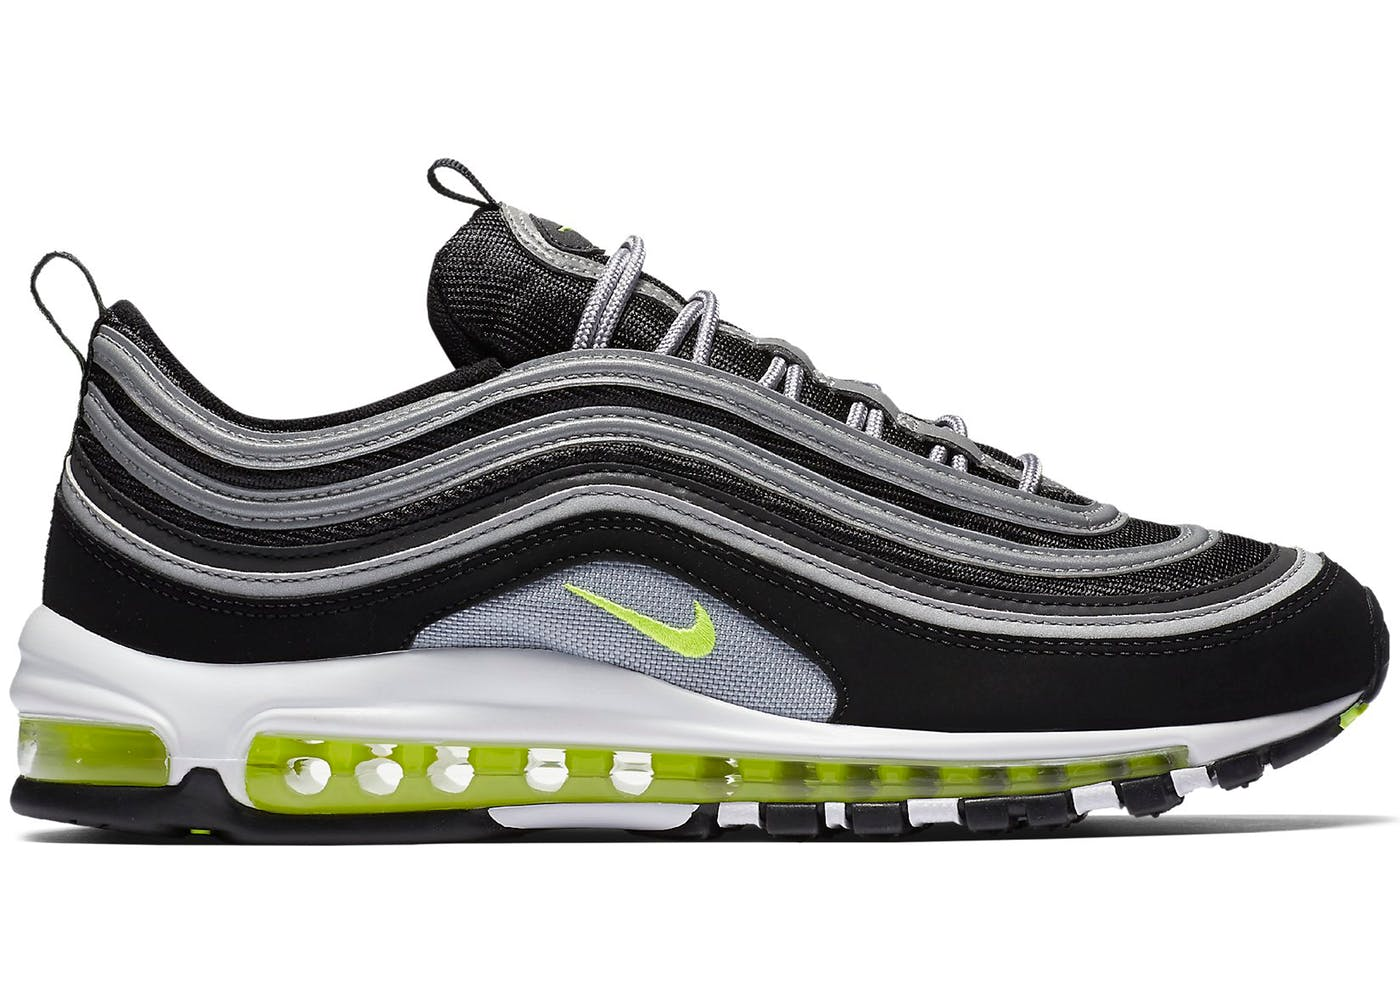 Cheap Nike Air Max 97 Silver Bullet UK Size 8.5